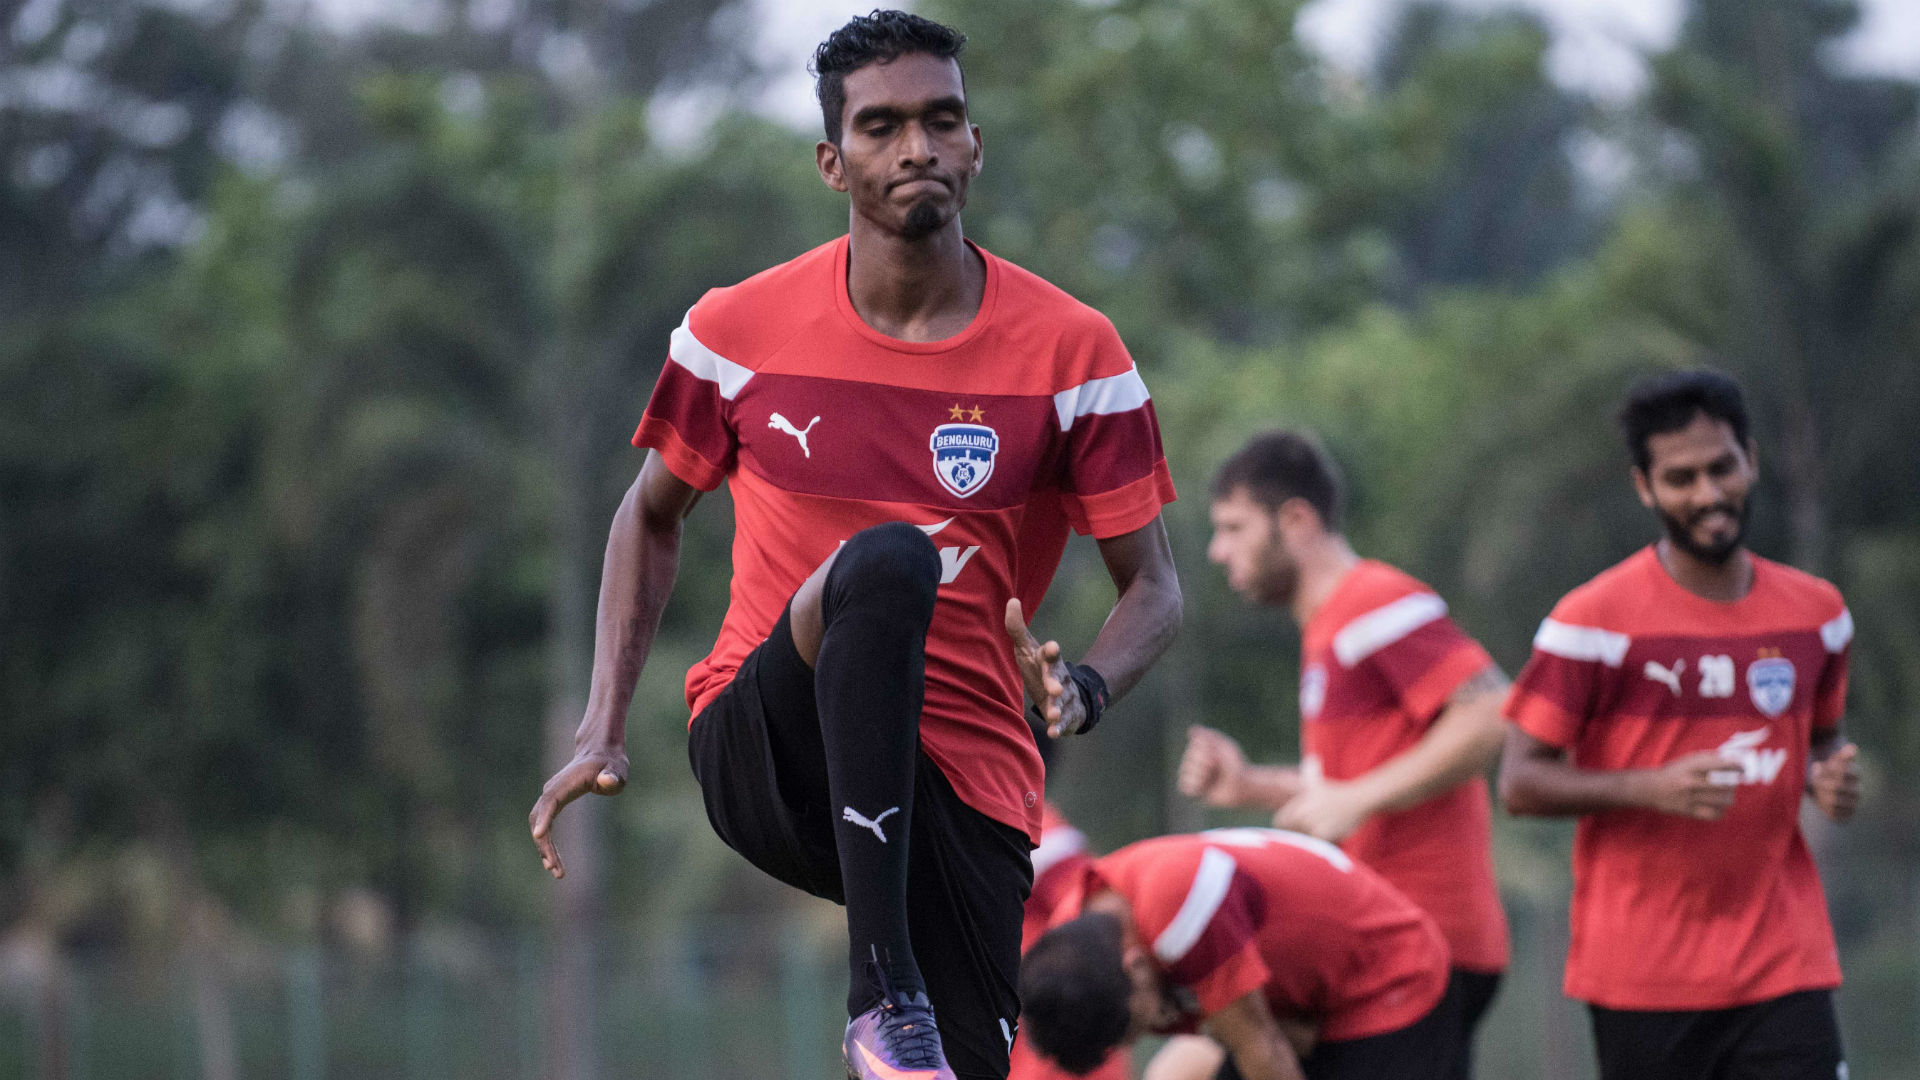 Lenny Rodrigues Bengaluru FC training session